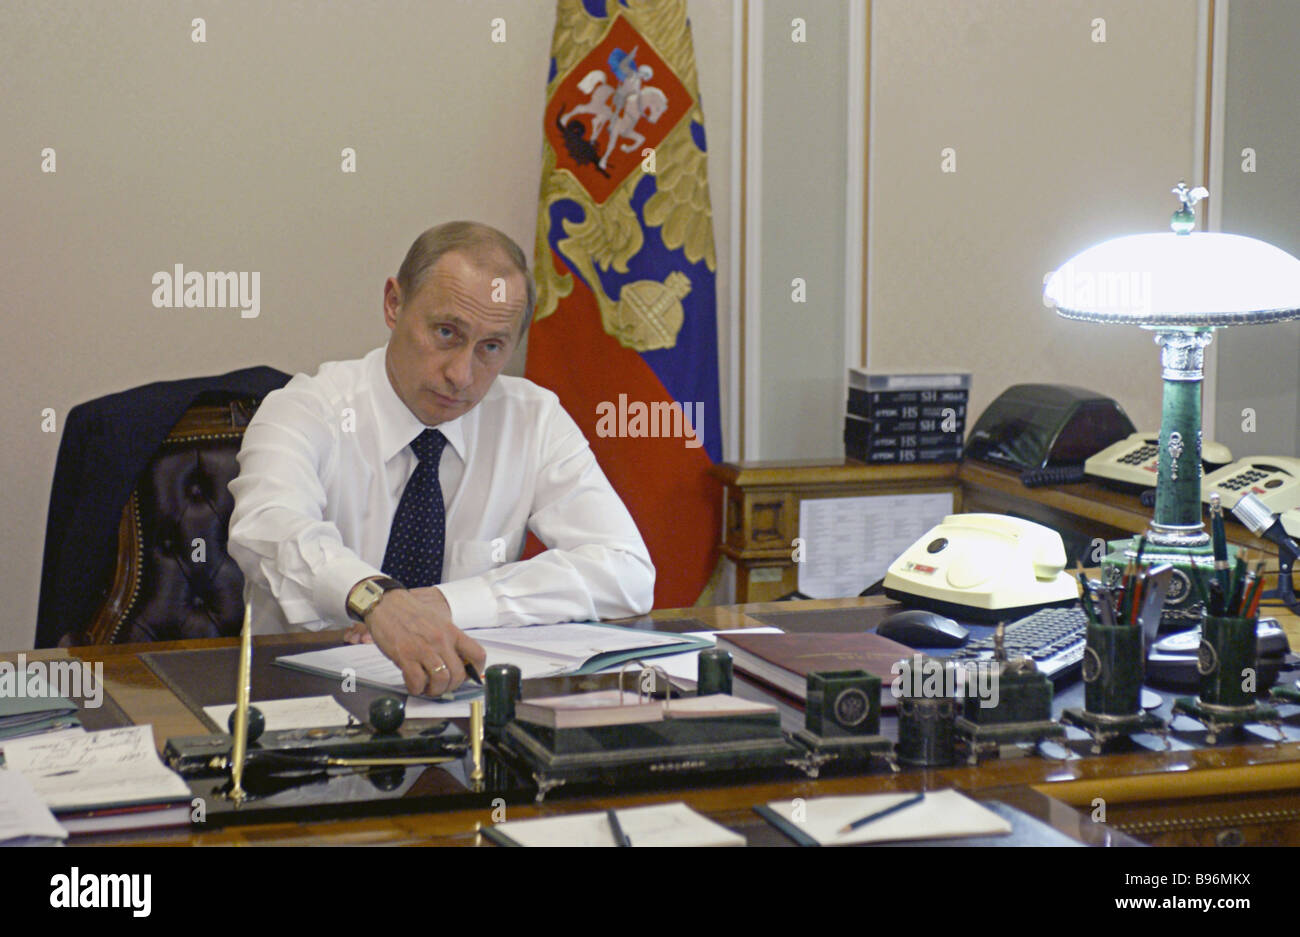 Russian President Vladimir Putin At His Office In Novo Ogaryovo Stock Photo Alamy